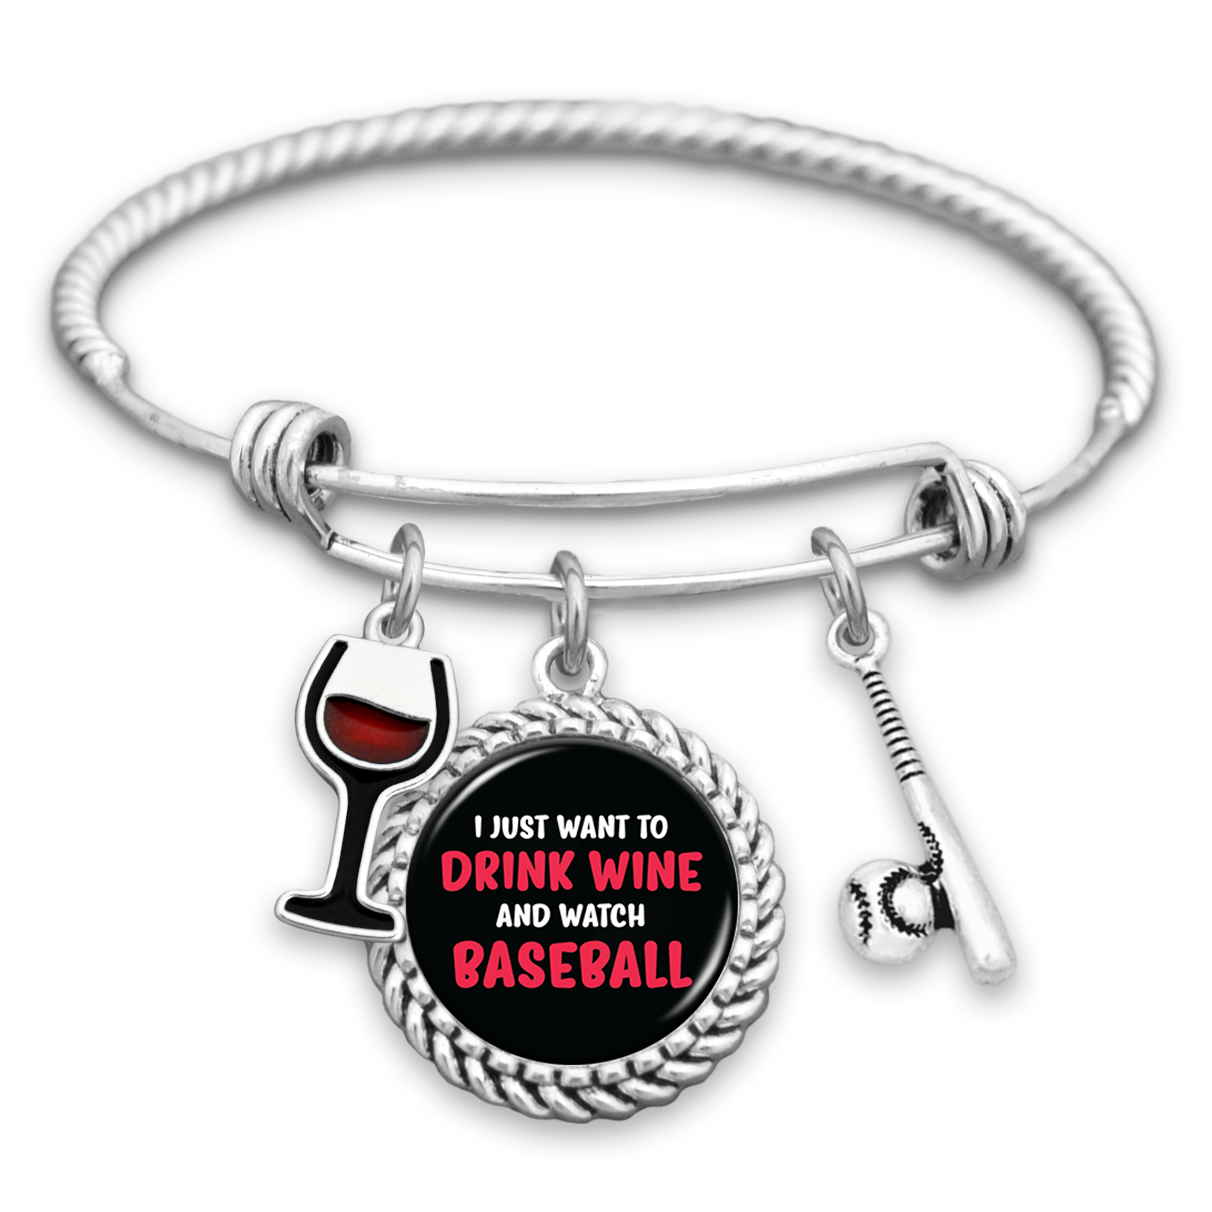 Baseball Charm Bracelet: I Just Want To Drink Wine And Watch Baseball Charm Bracelet